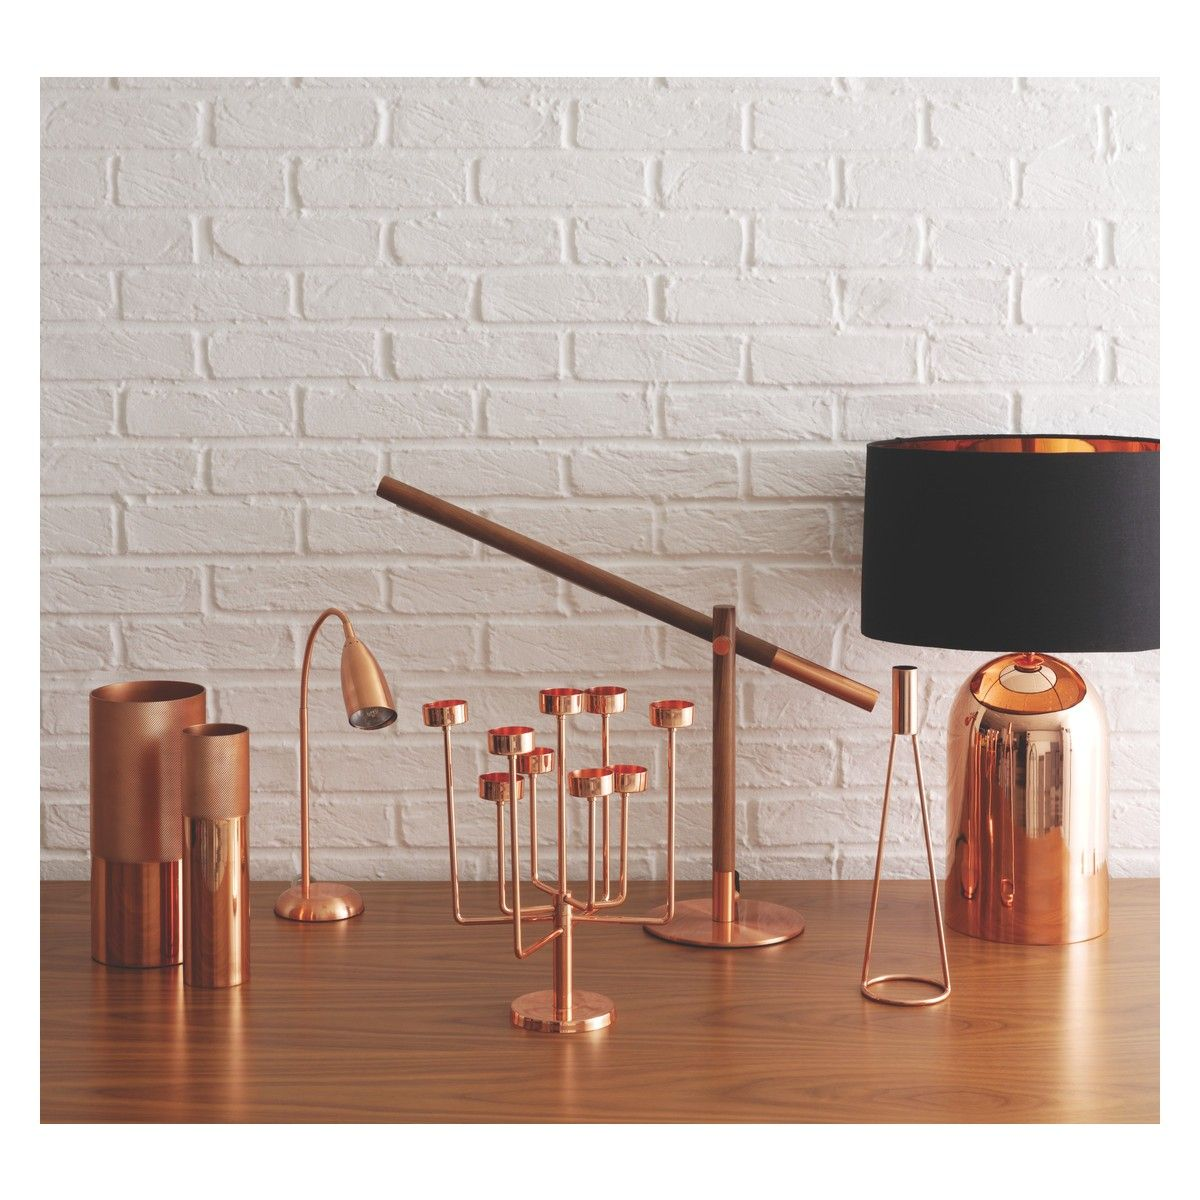 Copper copper vase desk lamp touch table lamps and desks copper copper vase buy now at habitat uk greentooth Choice Image